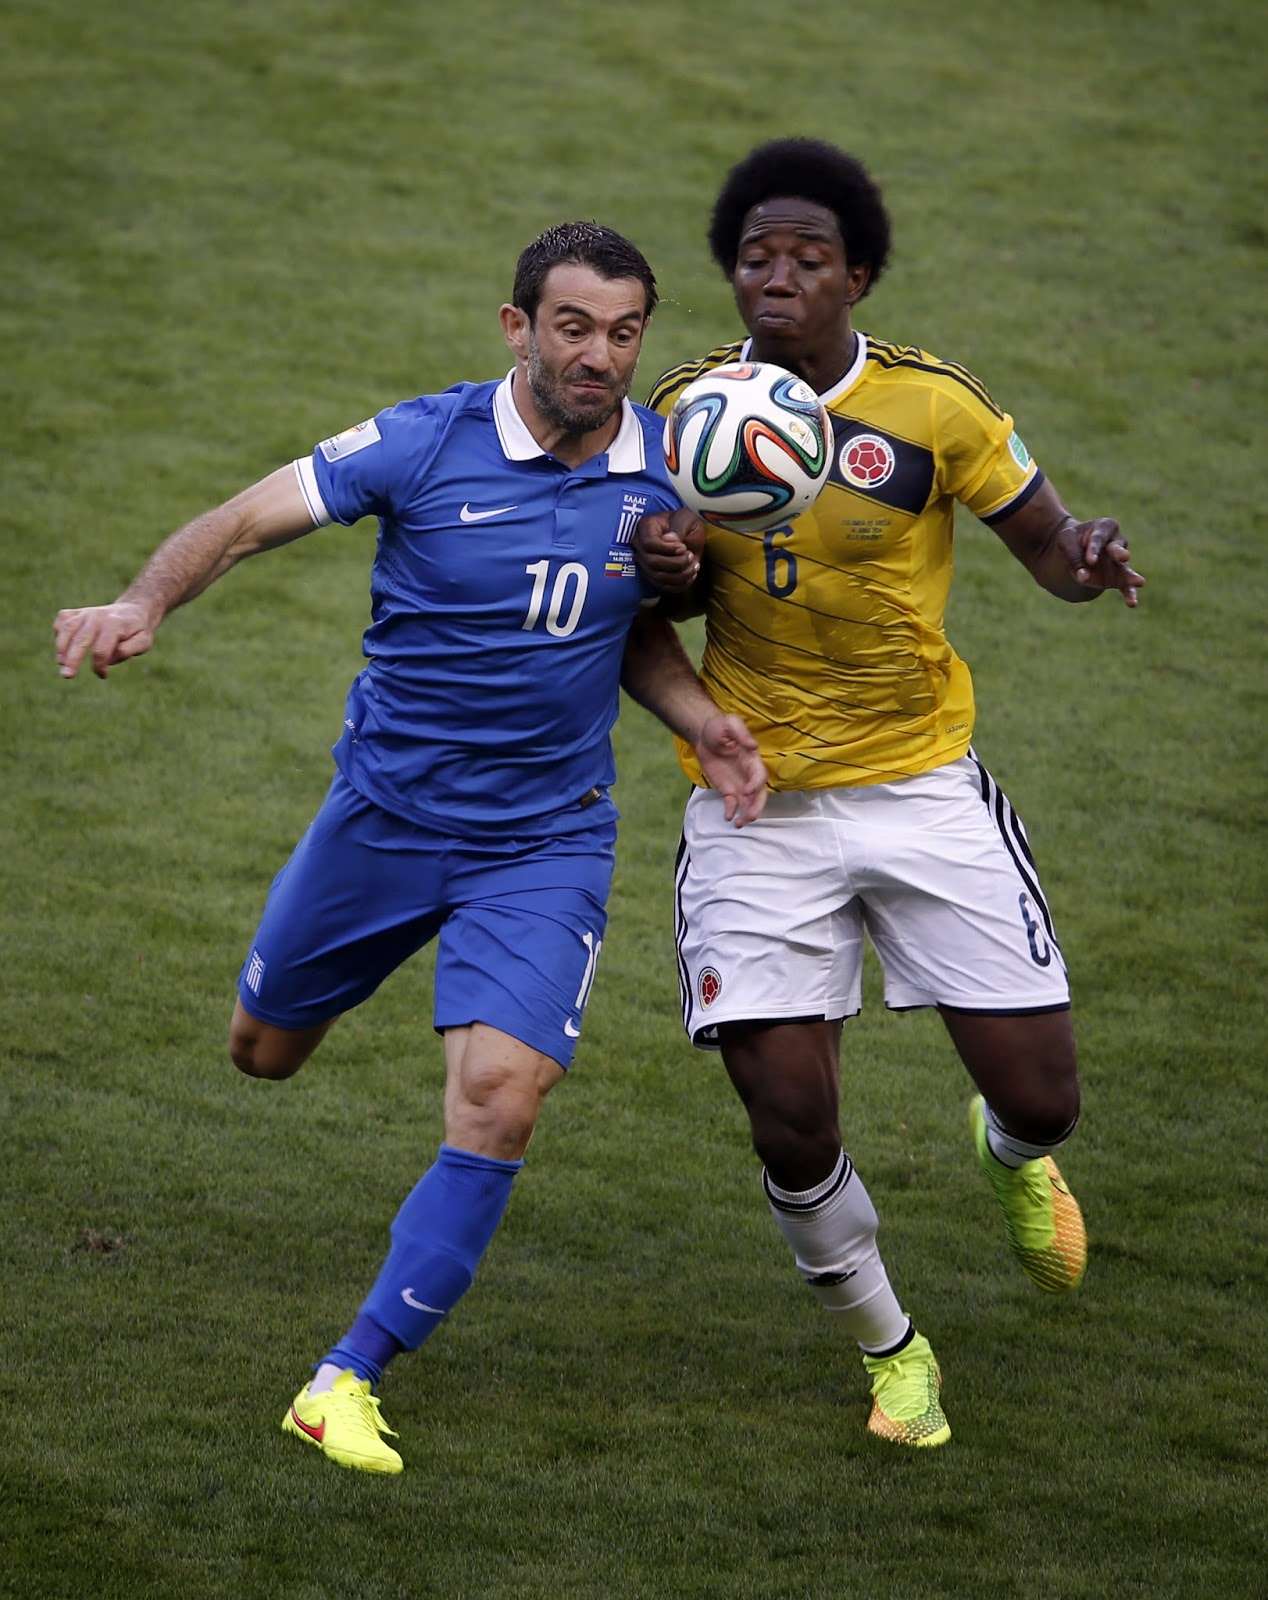 Brazil, Colombia Squad, Colombia vs Greece, Fernando Santos, FIFA World Cup, FIFA World Cup 2014, Football, Greece Squad, Group C, Konstantinos Manolas, Pablo Armero, Radamel Falcao, Sports, Teofilo Gutierrez,